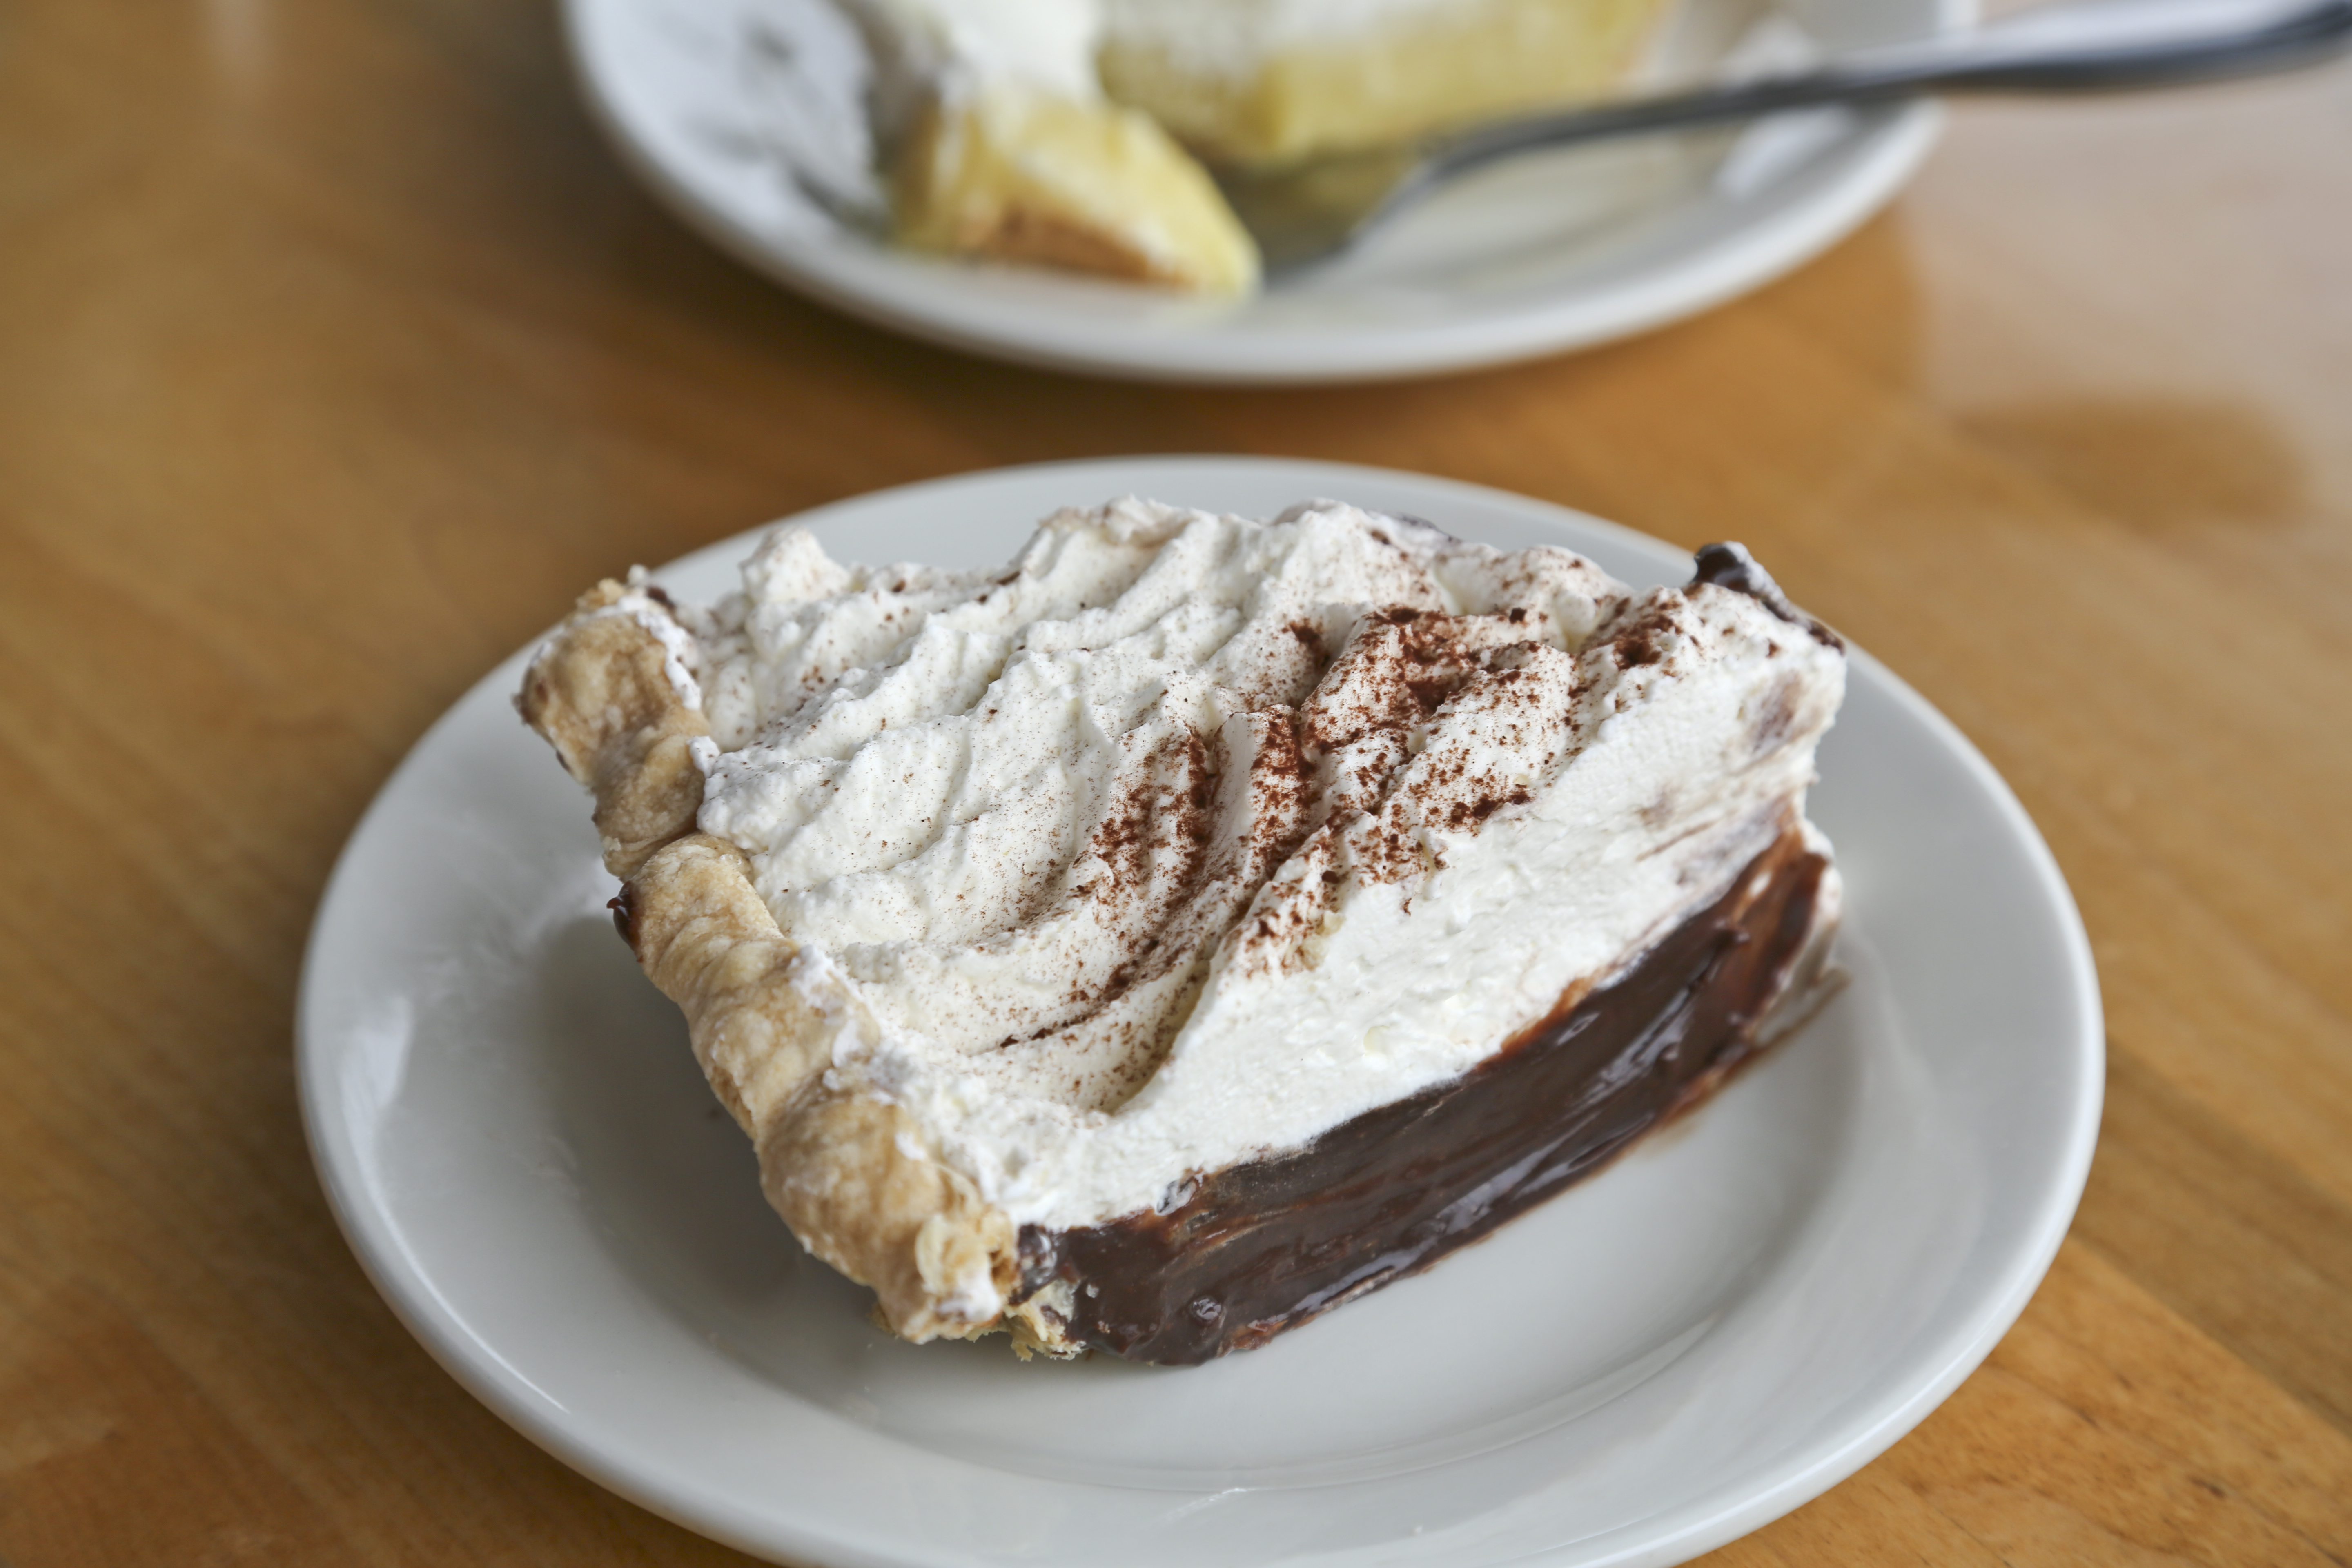 https://alabama-travel.s3.amazonaws.com/partners-uploads/photo/image/549b10bec913c76ecd000057/_012_jnn_chocolate_pie_horiz.jpg